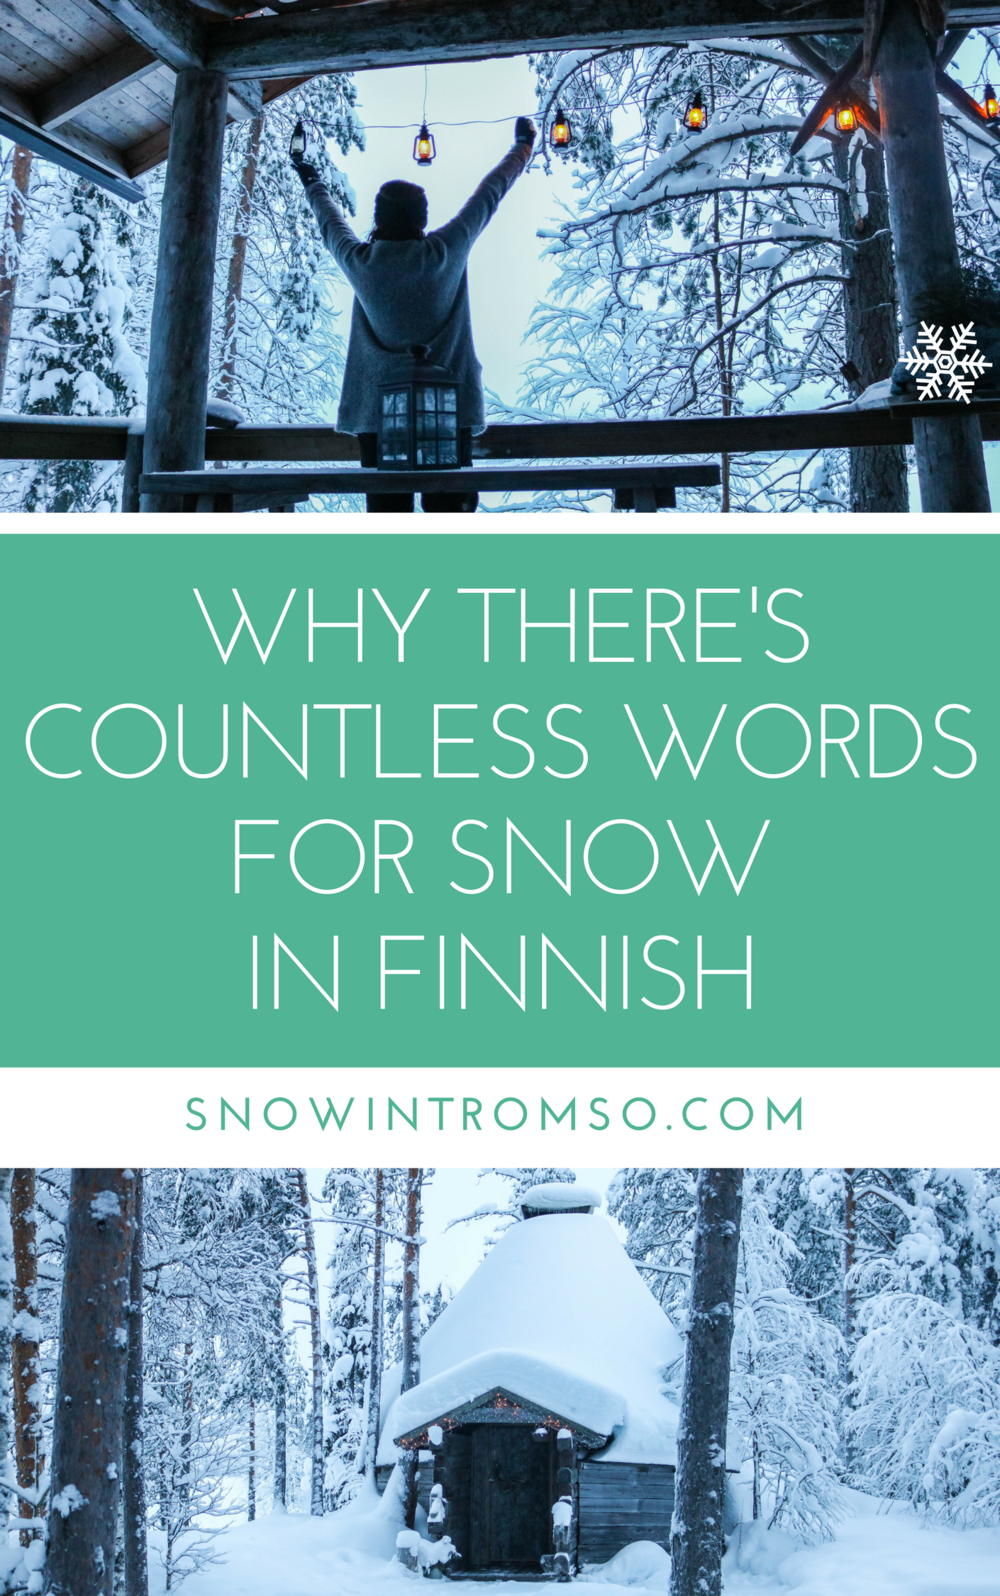 Why there's countless words for snow in Finland - and where you can find the cabin of your dreams. Click through to read the article!